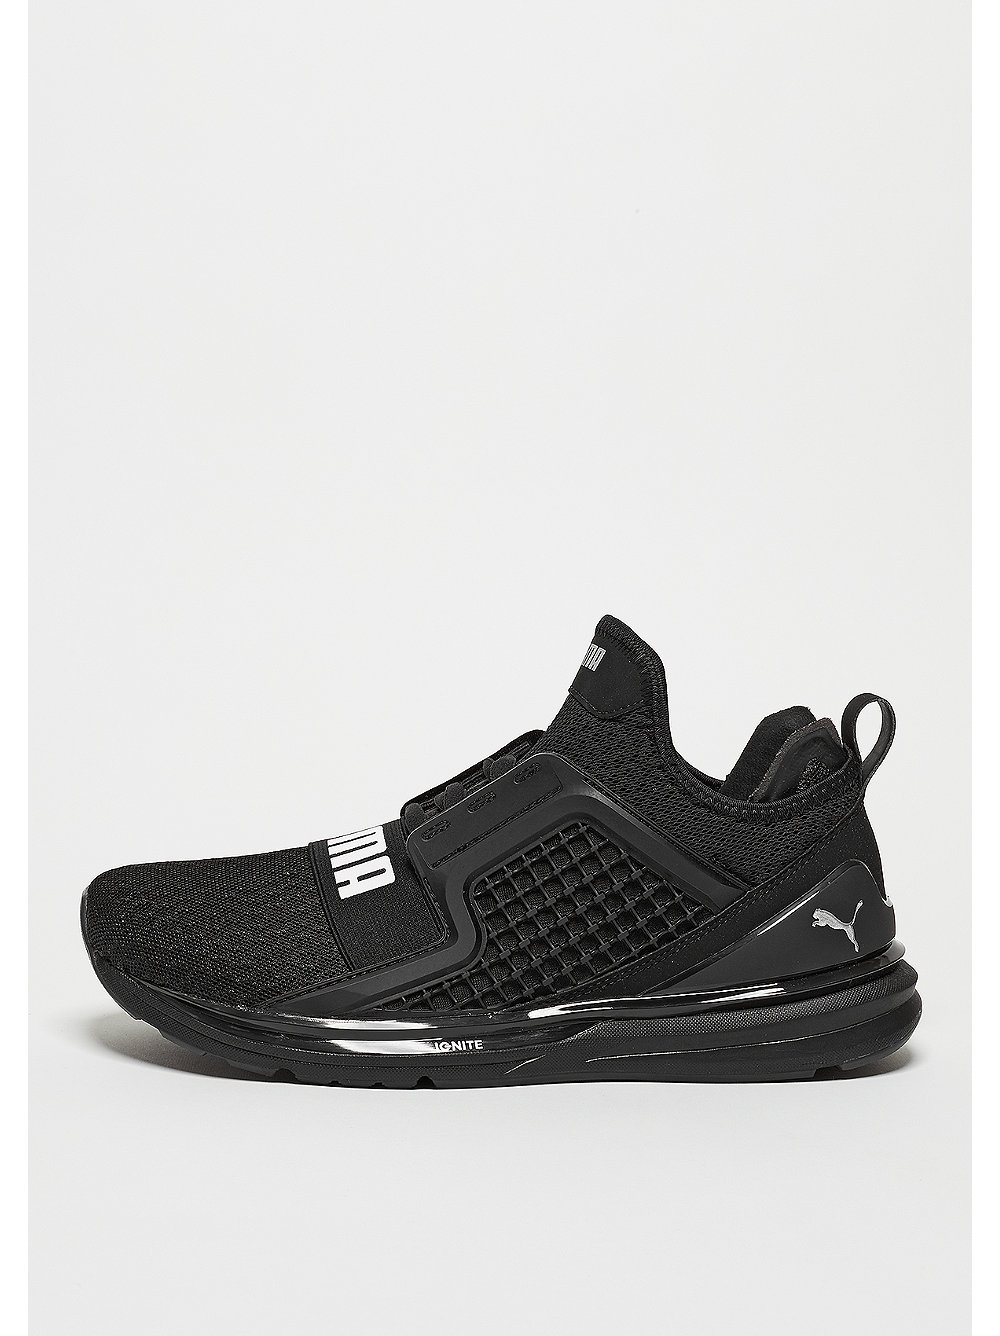 Puma Ignite Limitless black